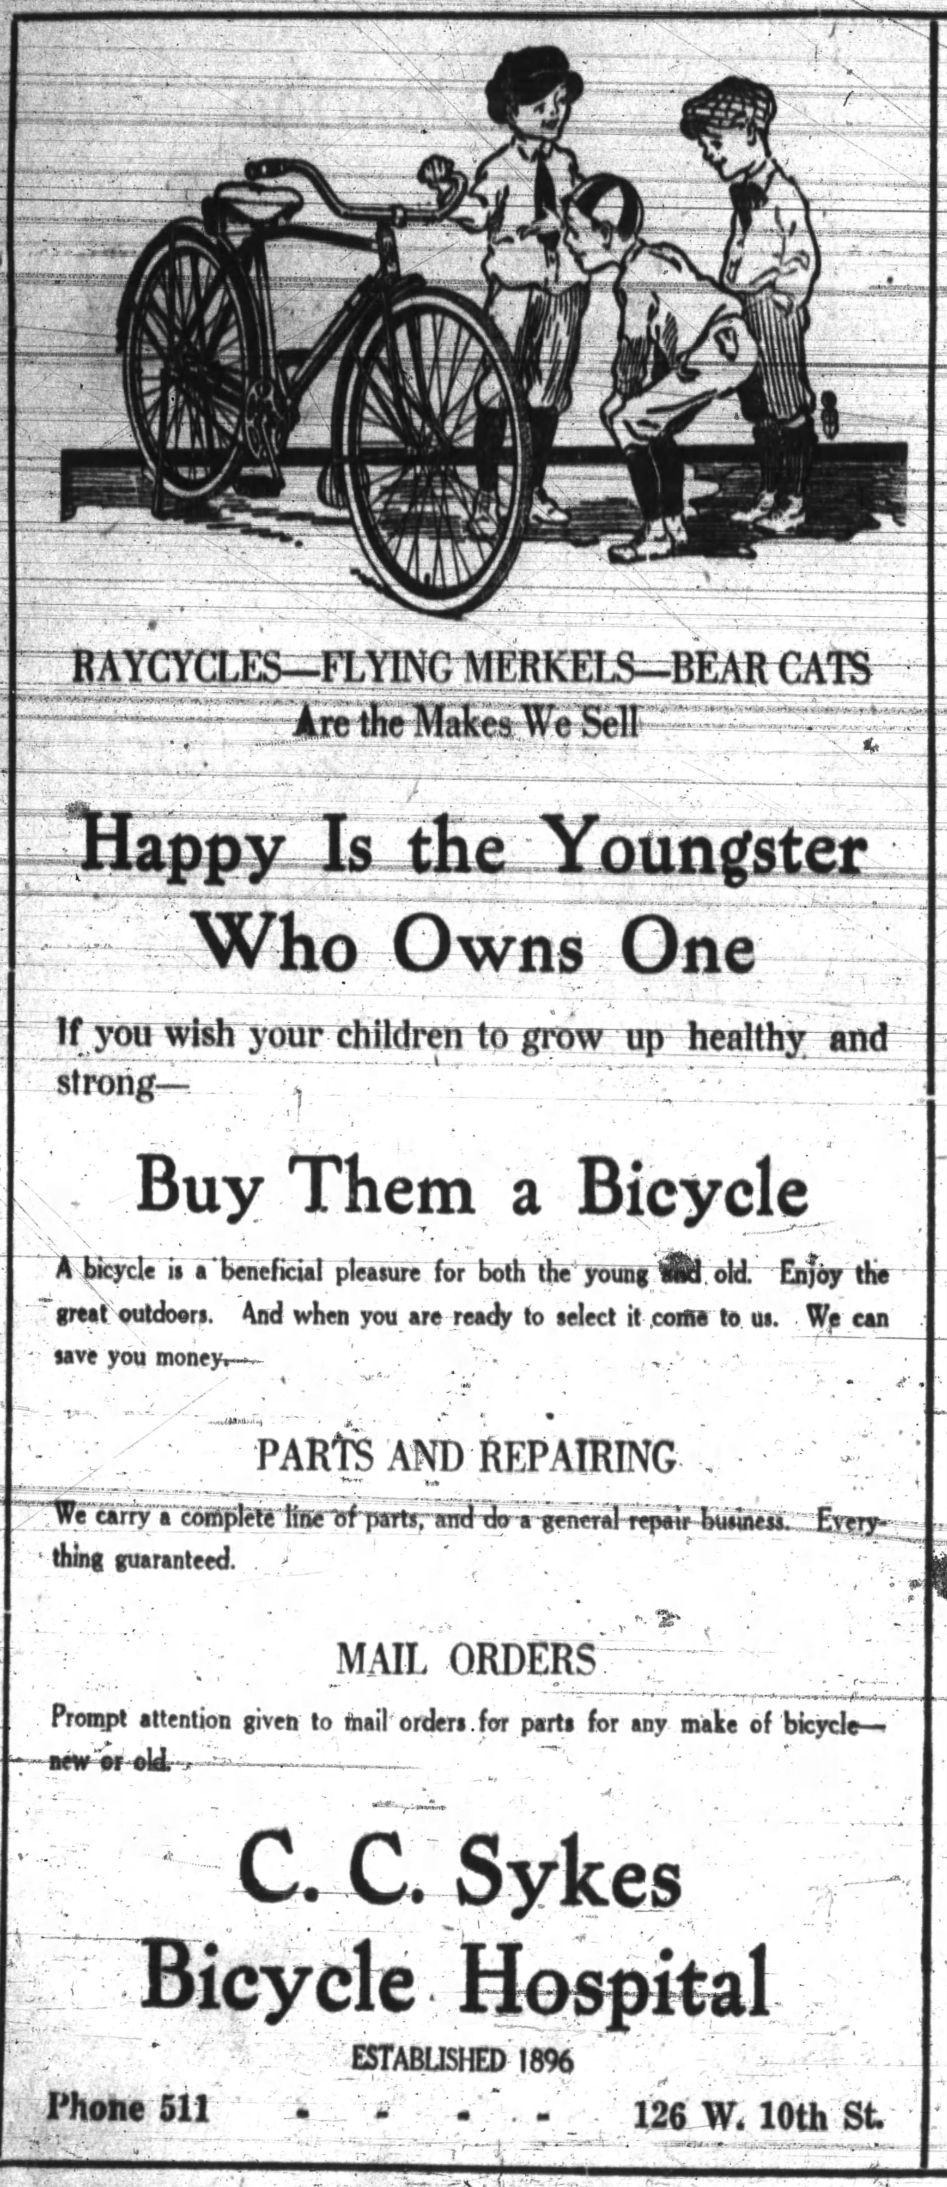 Bicycle Hospital ad